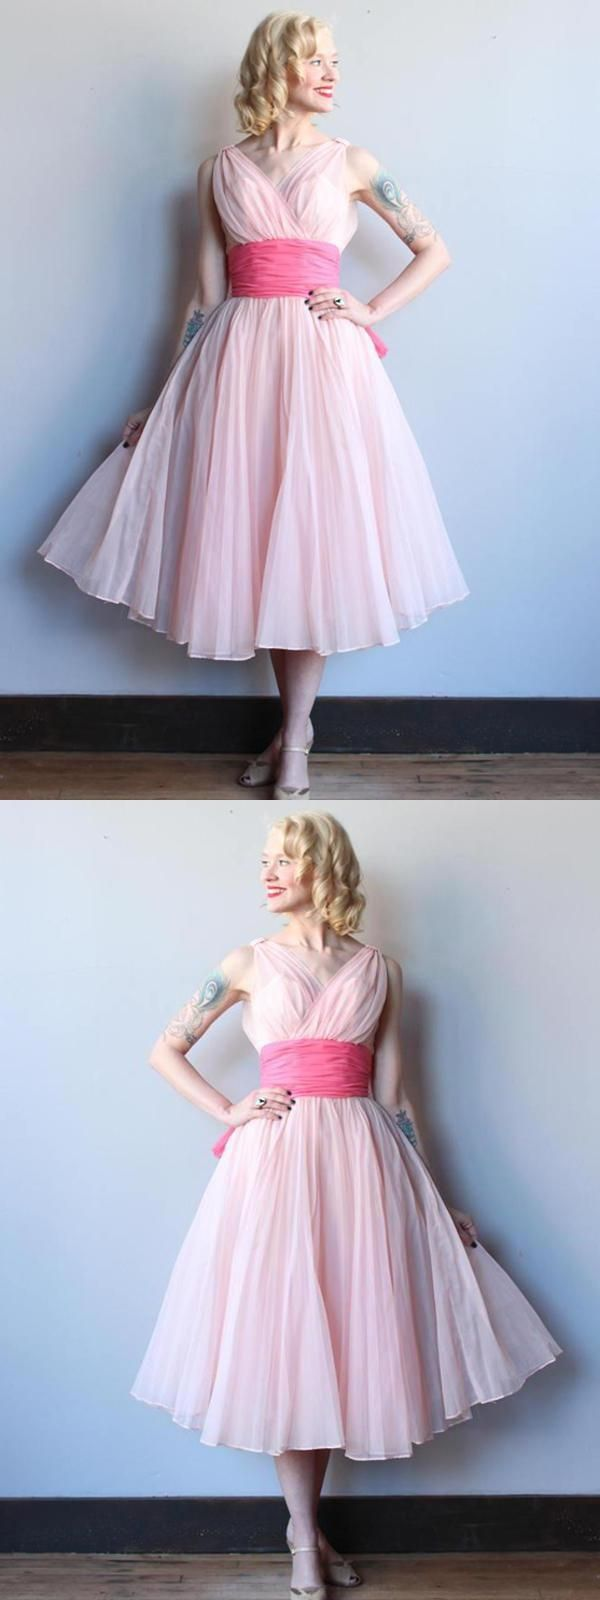 Outlet easy prom dresses for cheap prom dresses pink prom dresses